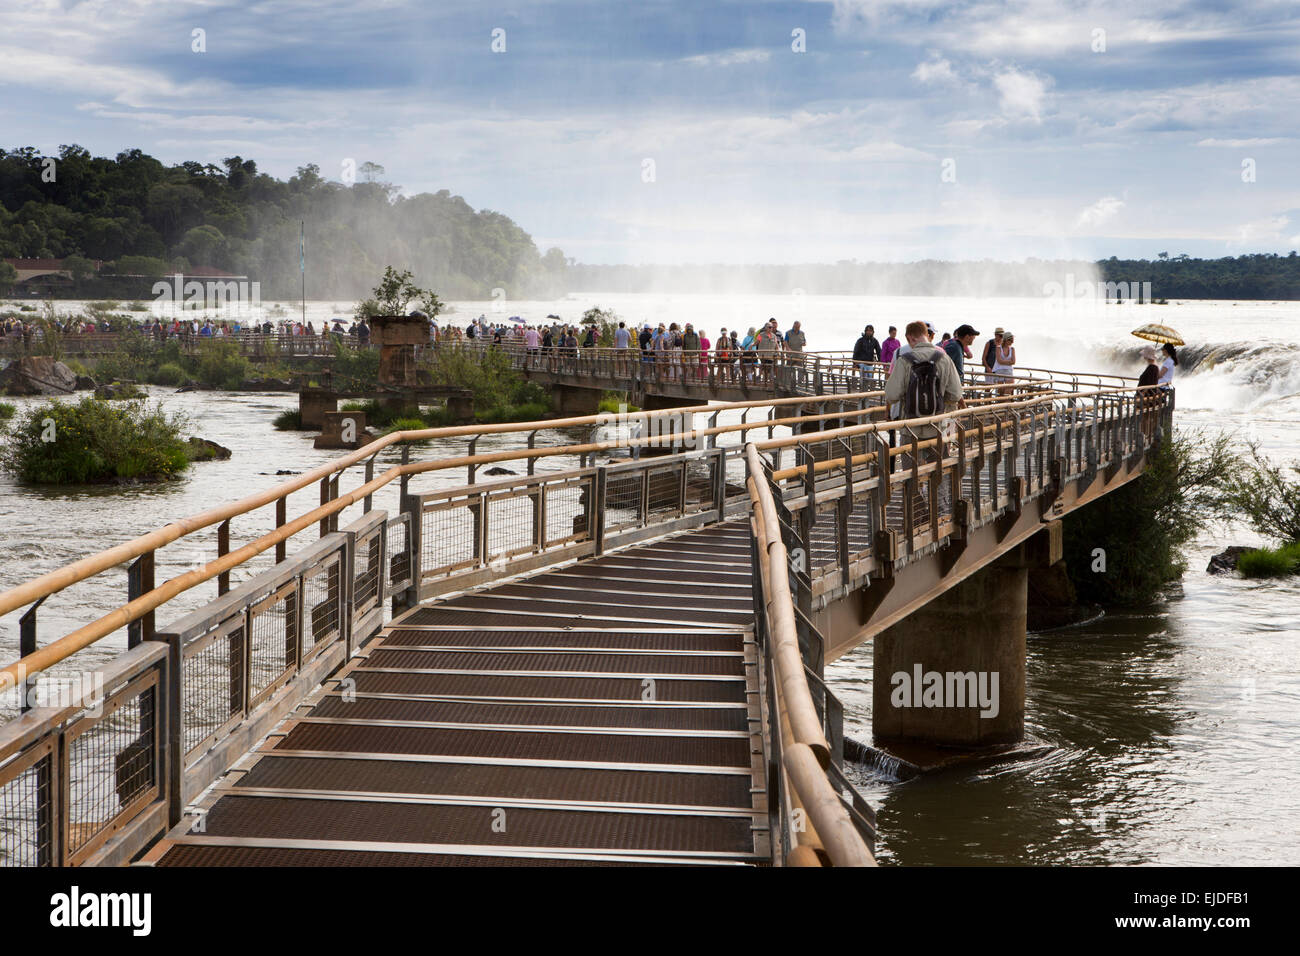 Argentina, Iguazu Falls National Park, tourists viewing Garganta el Diablo waterfall, from elevated walkway - Stock Image